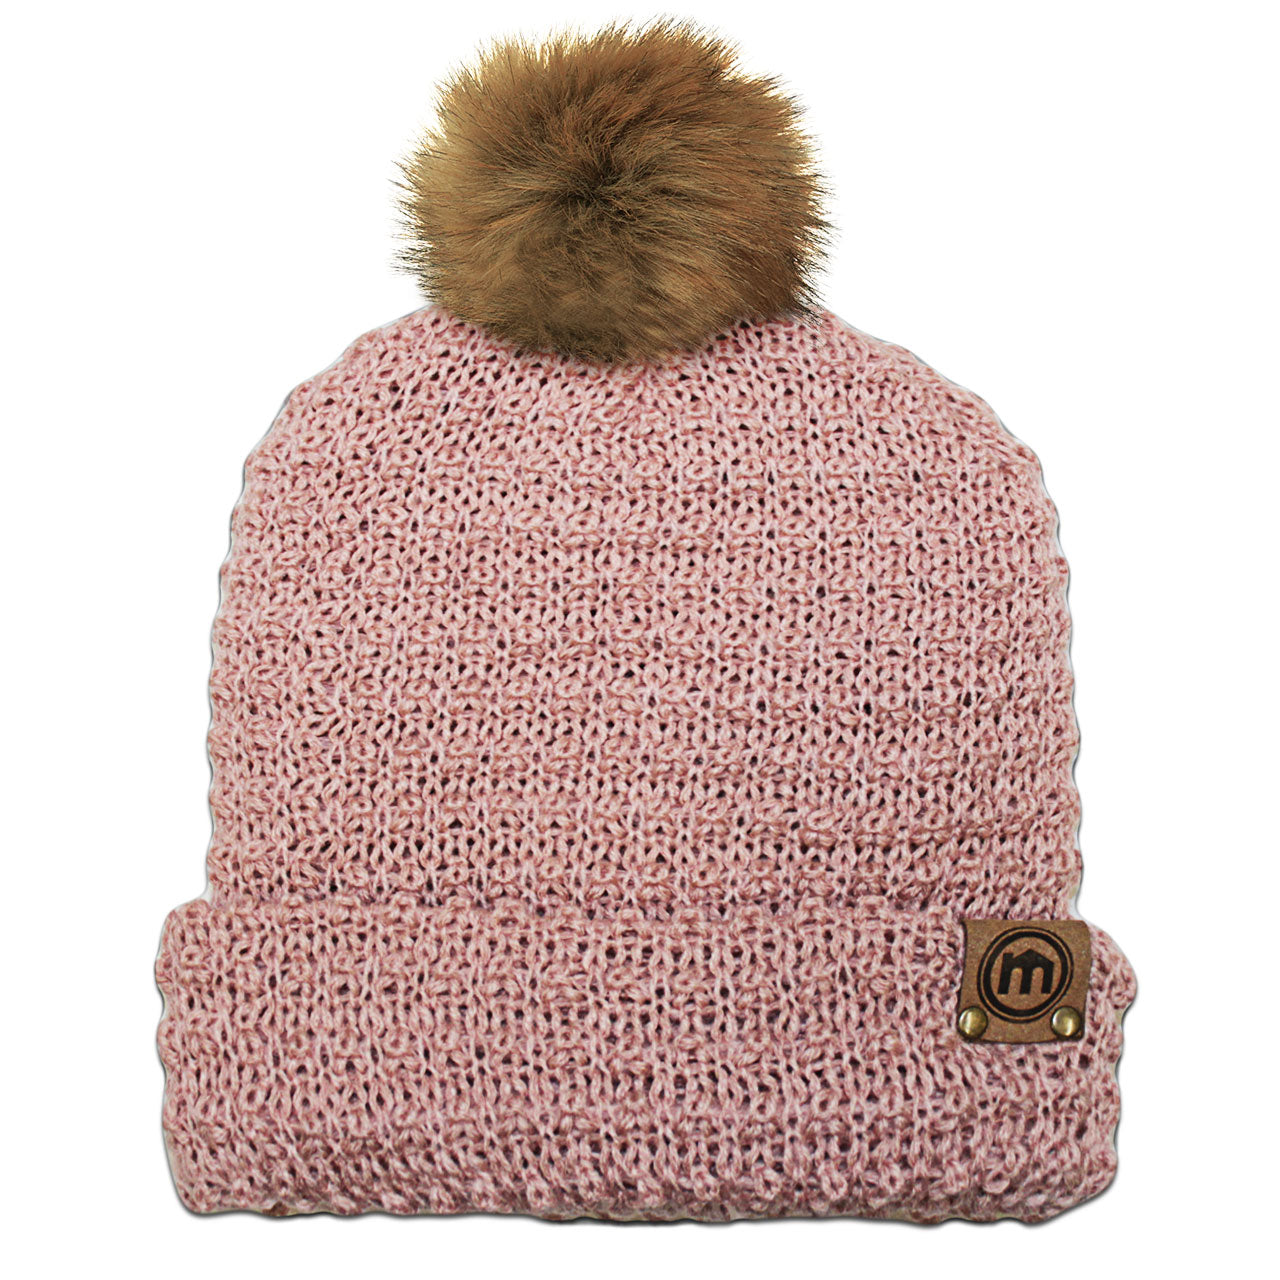 531cc09c5c24d Womens Beanies - Mitscoots Outfitters